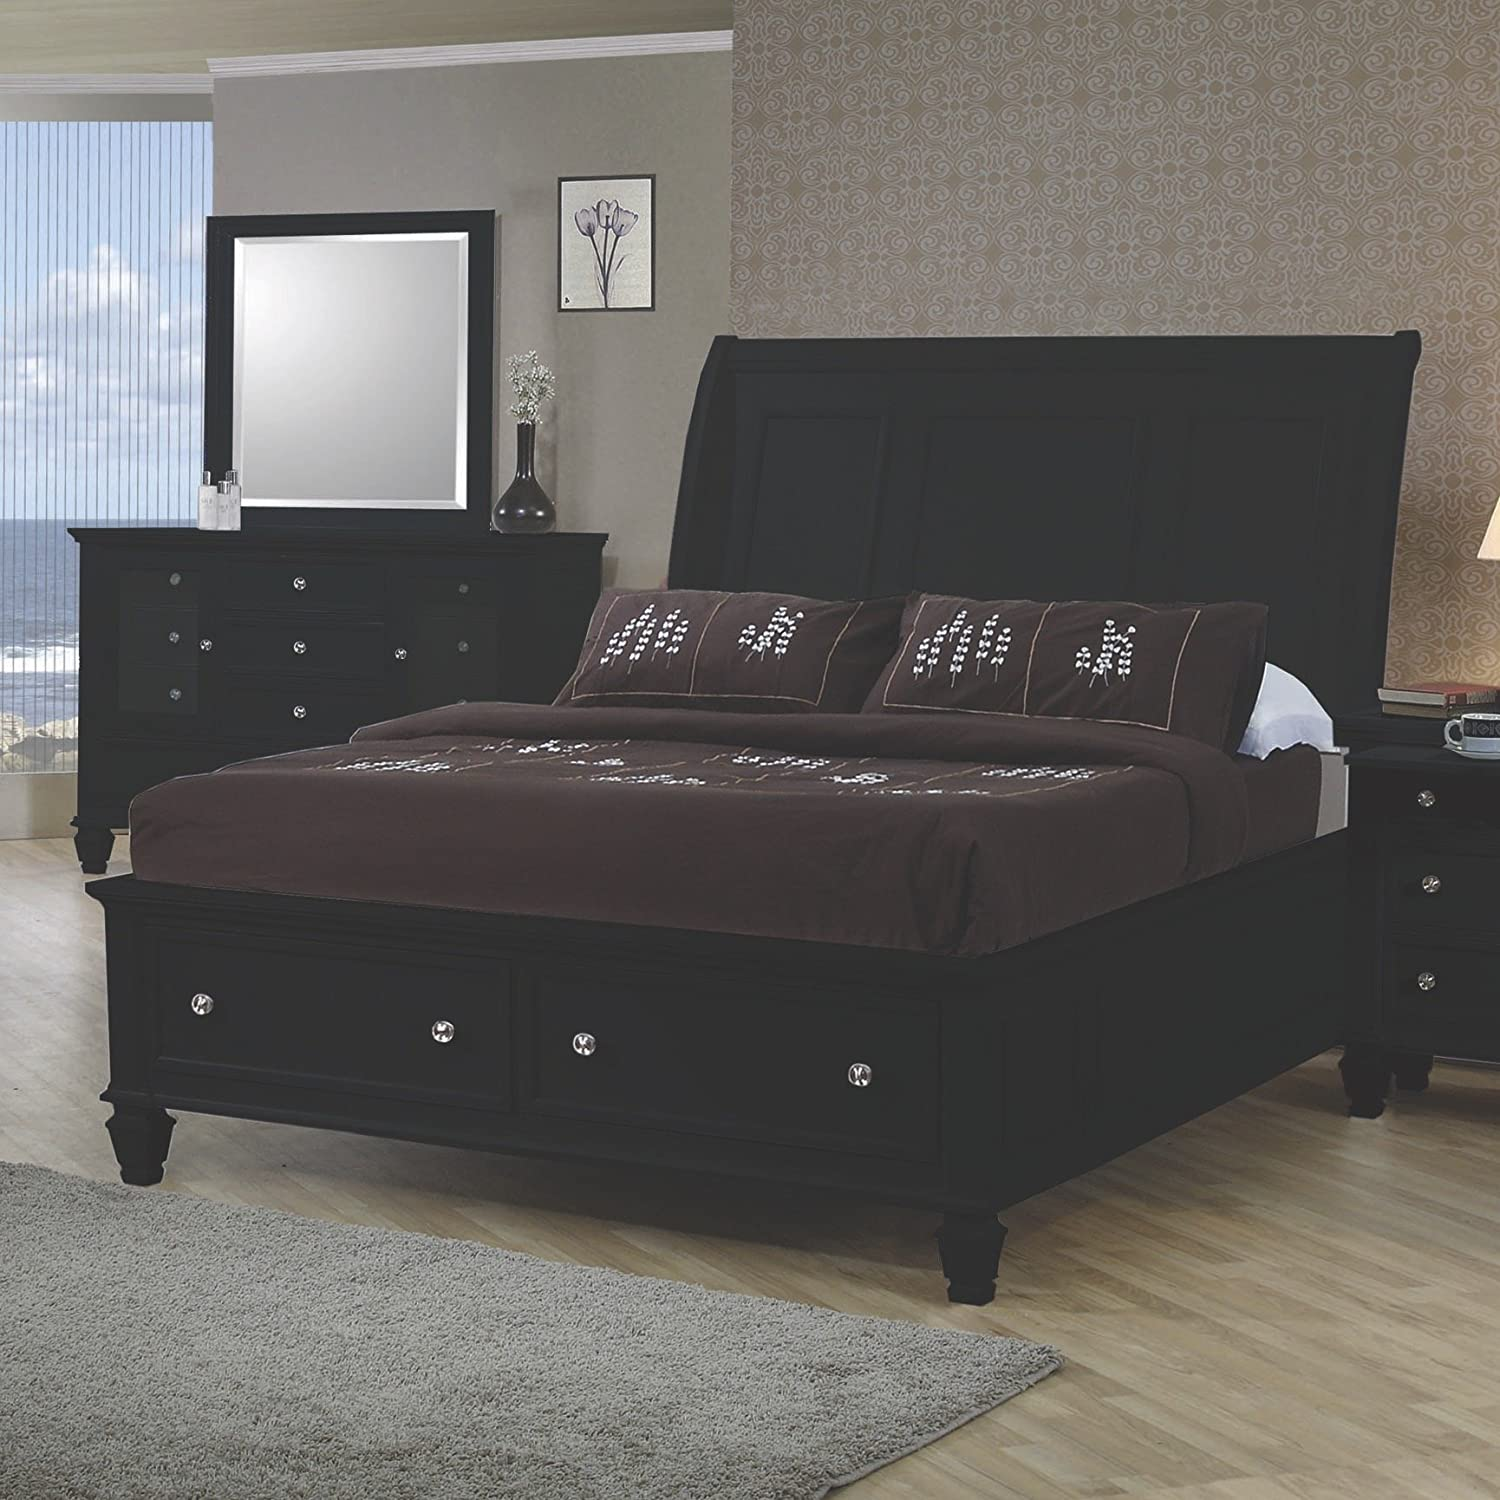 - Amazon.com: Coaster Home Furnishings Sandy Beach Queen Sleigh Bed